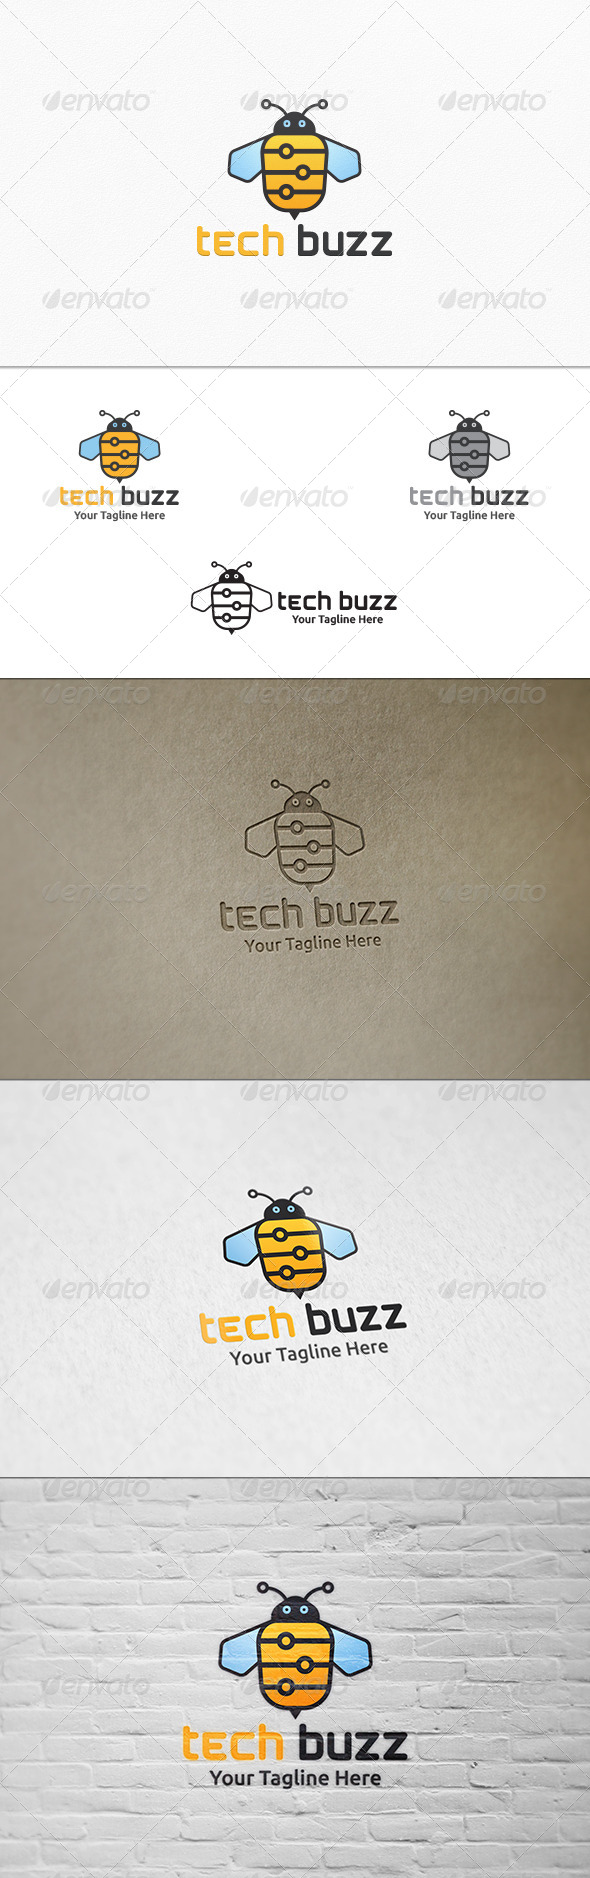 GraphicRiver Tech Buzz Logo Template 7385814